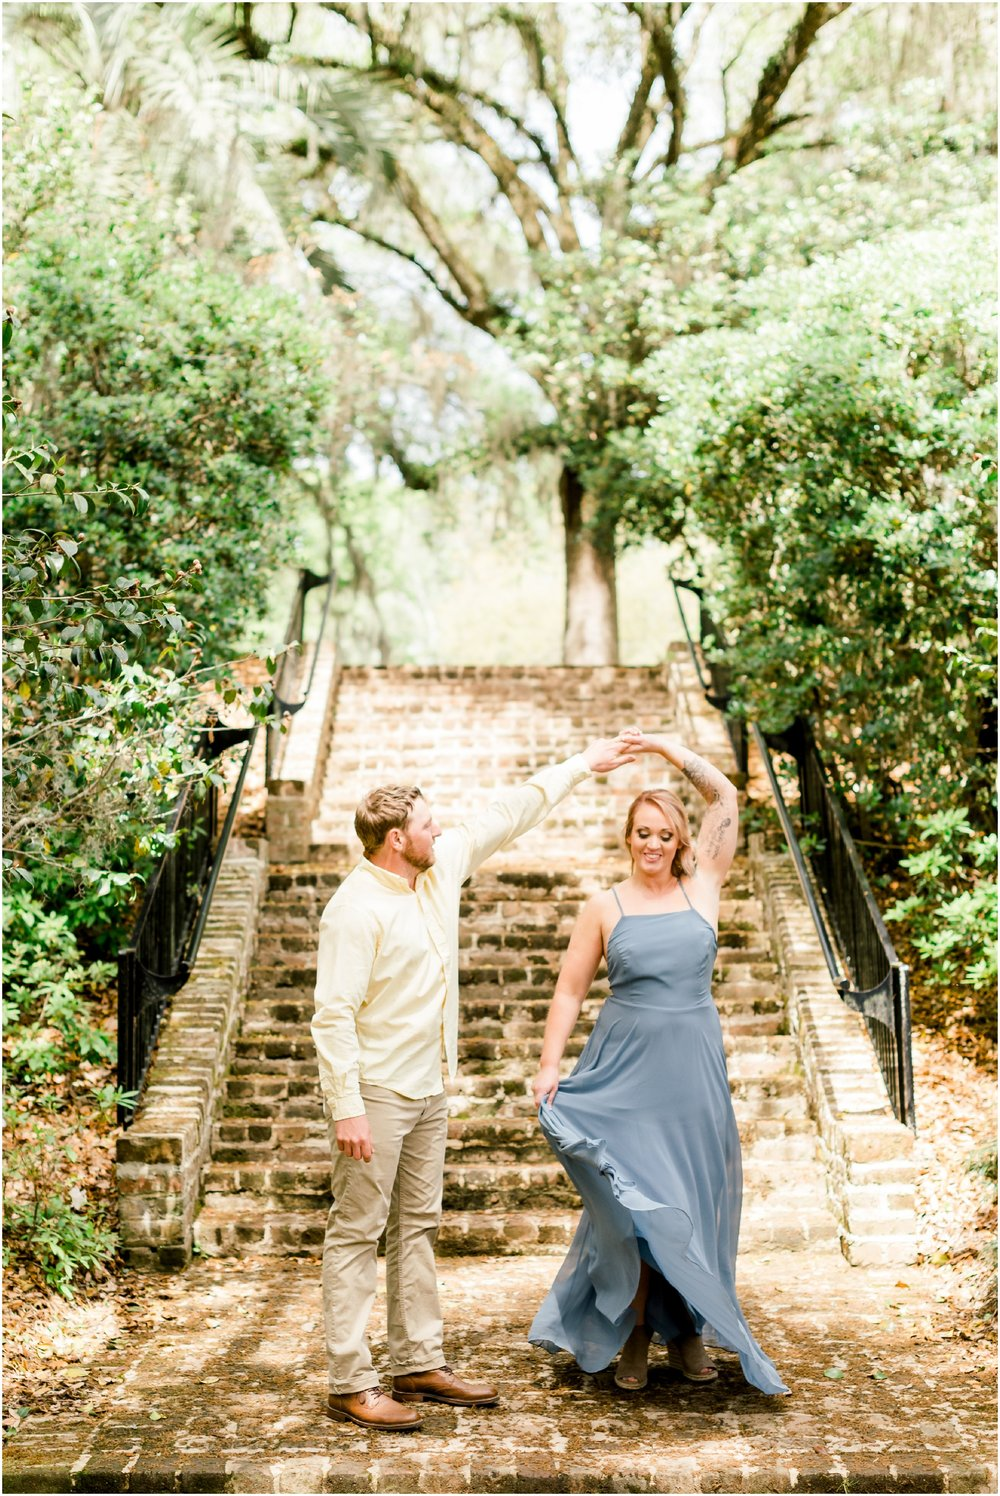 Mepkin-Abbey-Moncks-Corner-South-Carolina-Engagement-Session-Photos_0015.jpg